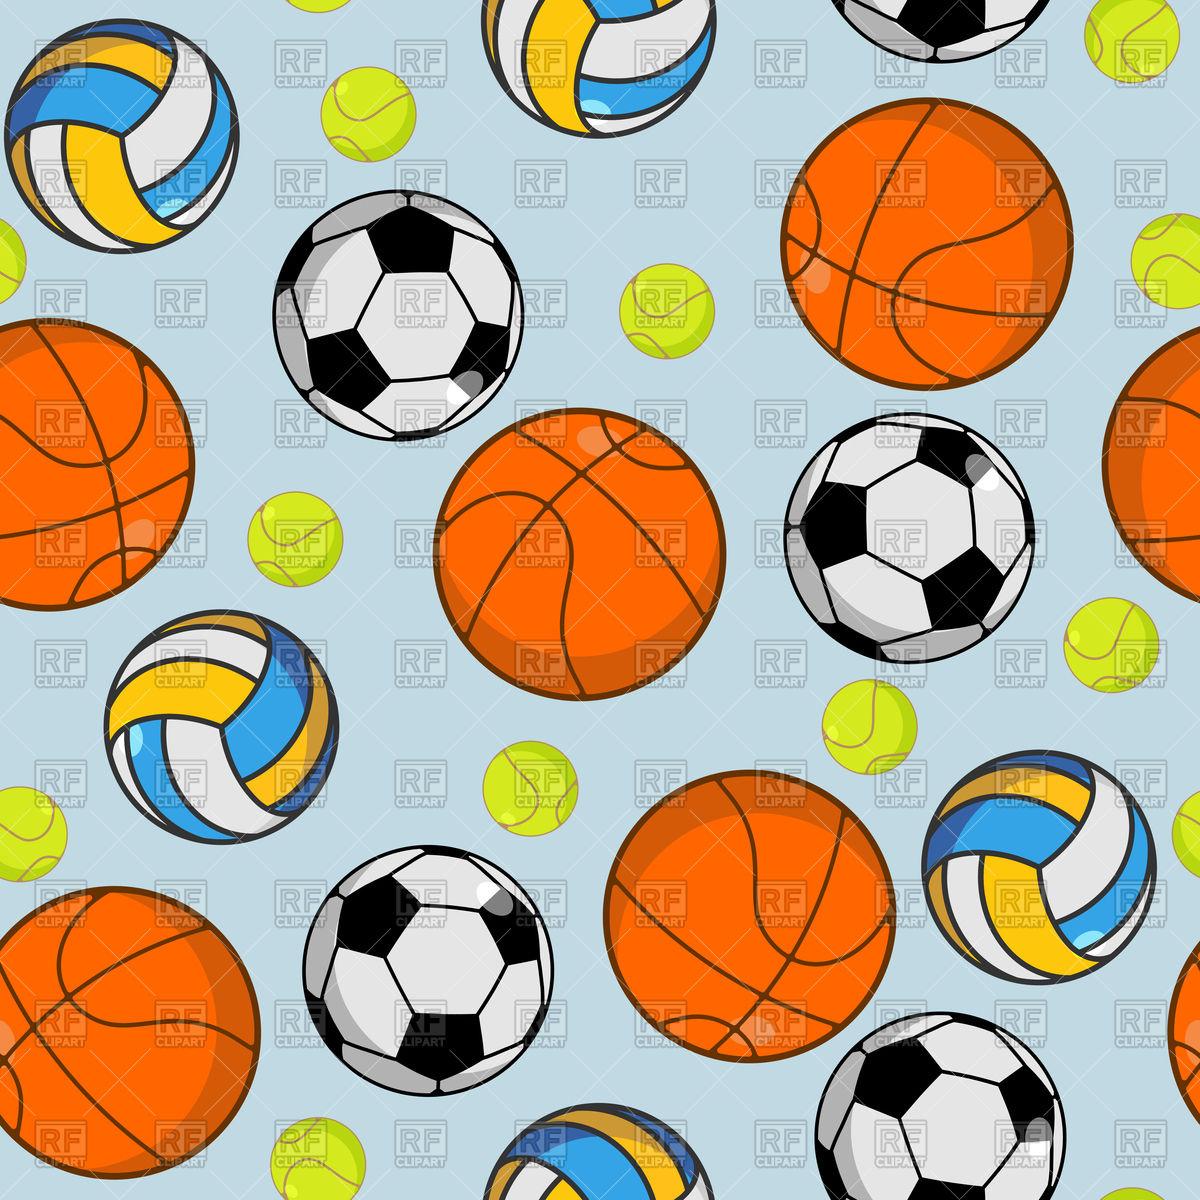 All sports backgrounds clipart 6 » Clipart Station.